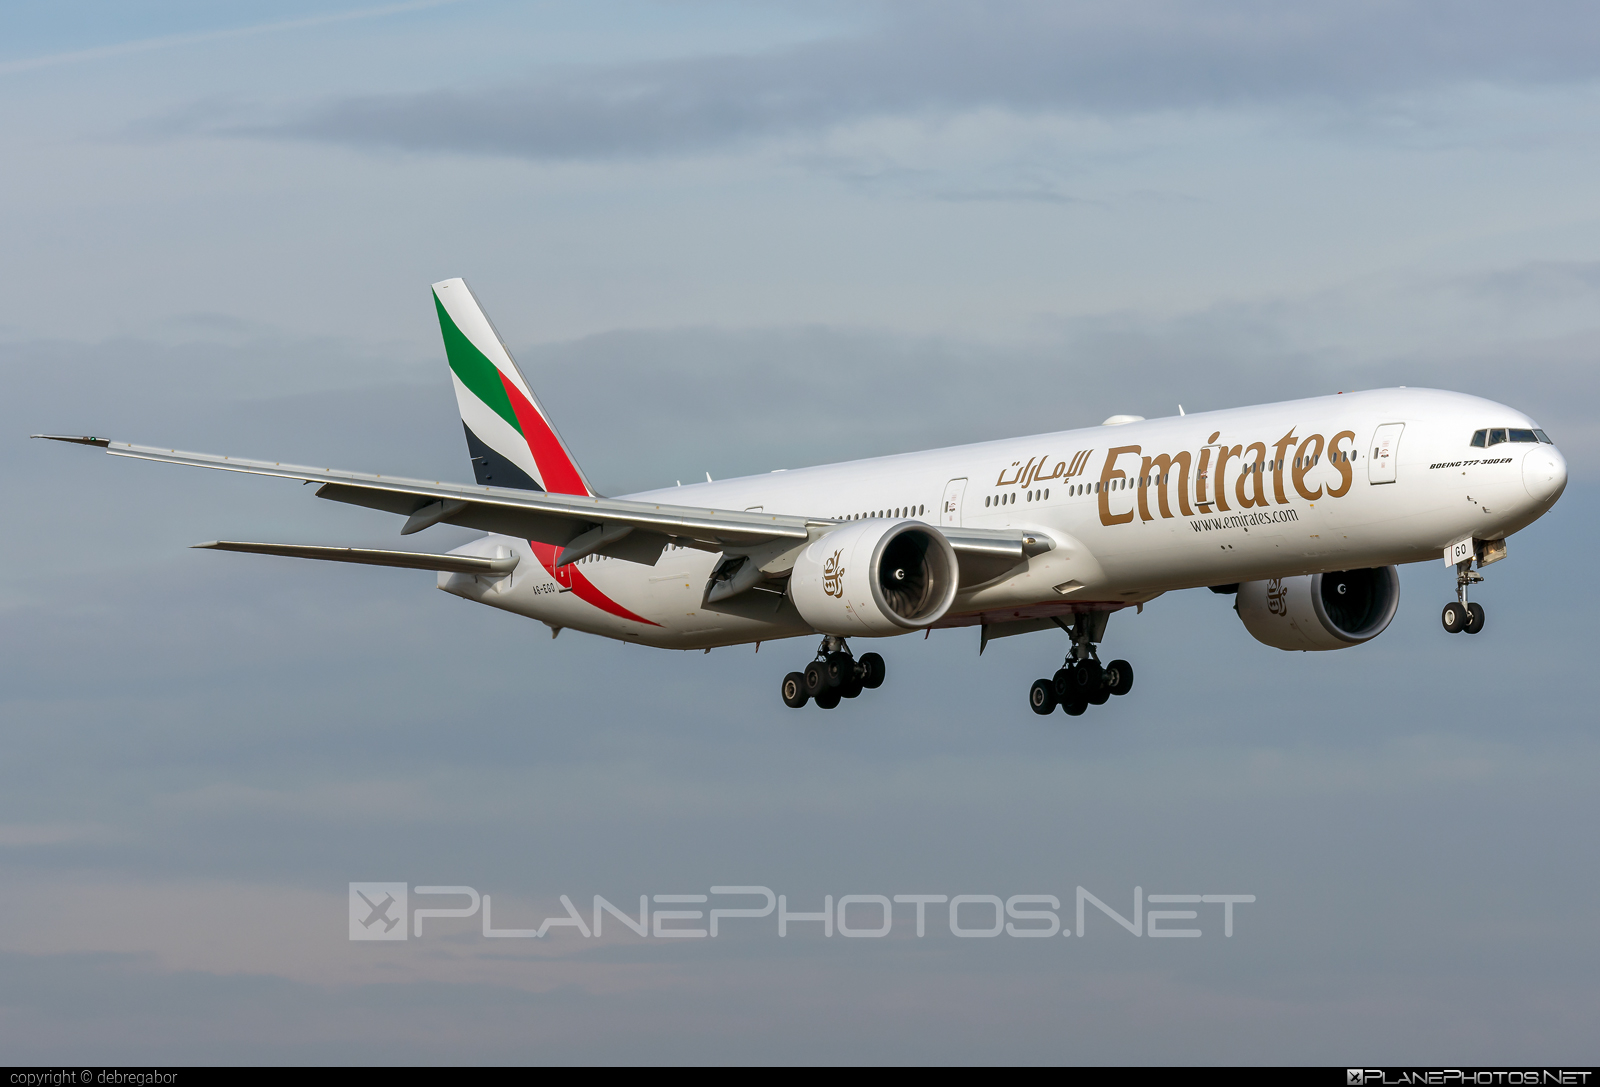 Boeing 777-300ER - A6-EGO operated by Emirates #b777 #b777er #boeing #boeing777 #emirates #tripleseven